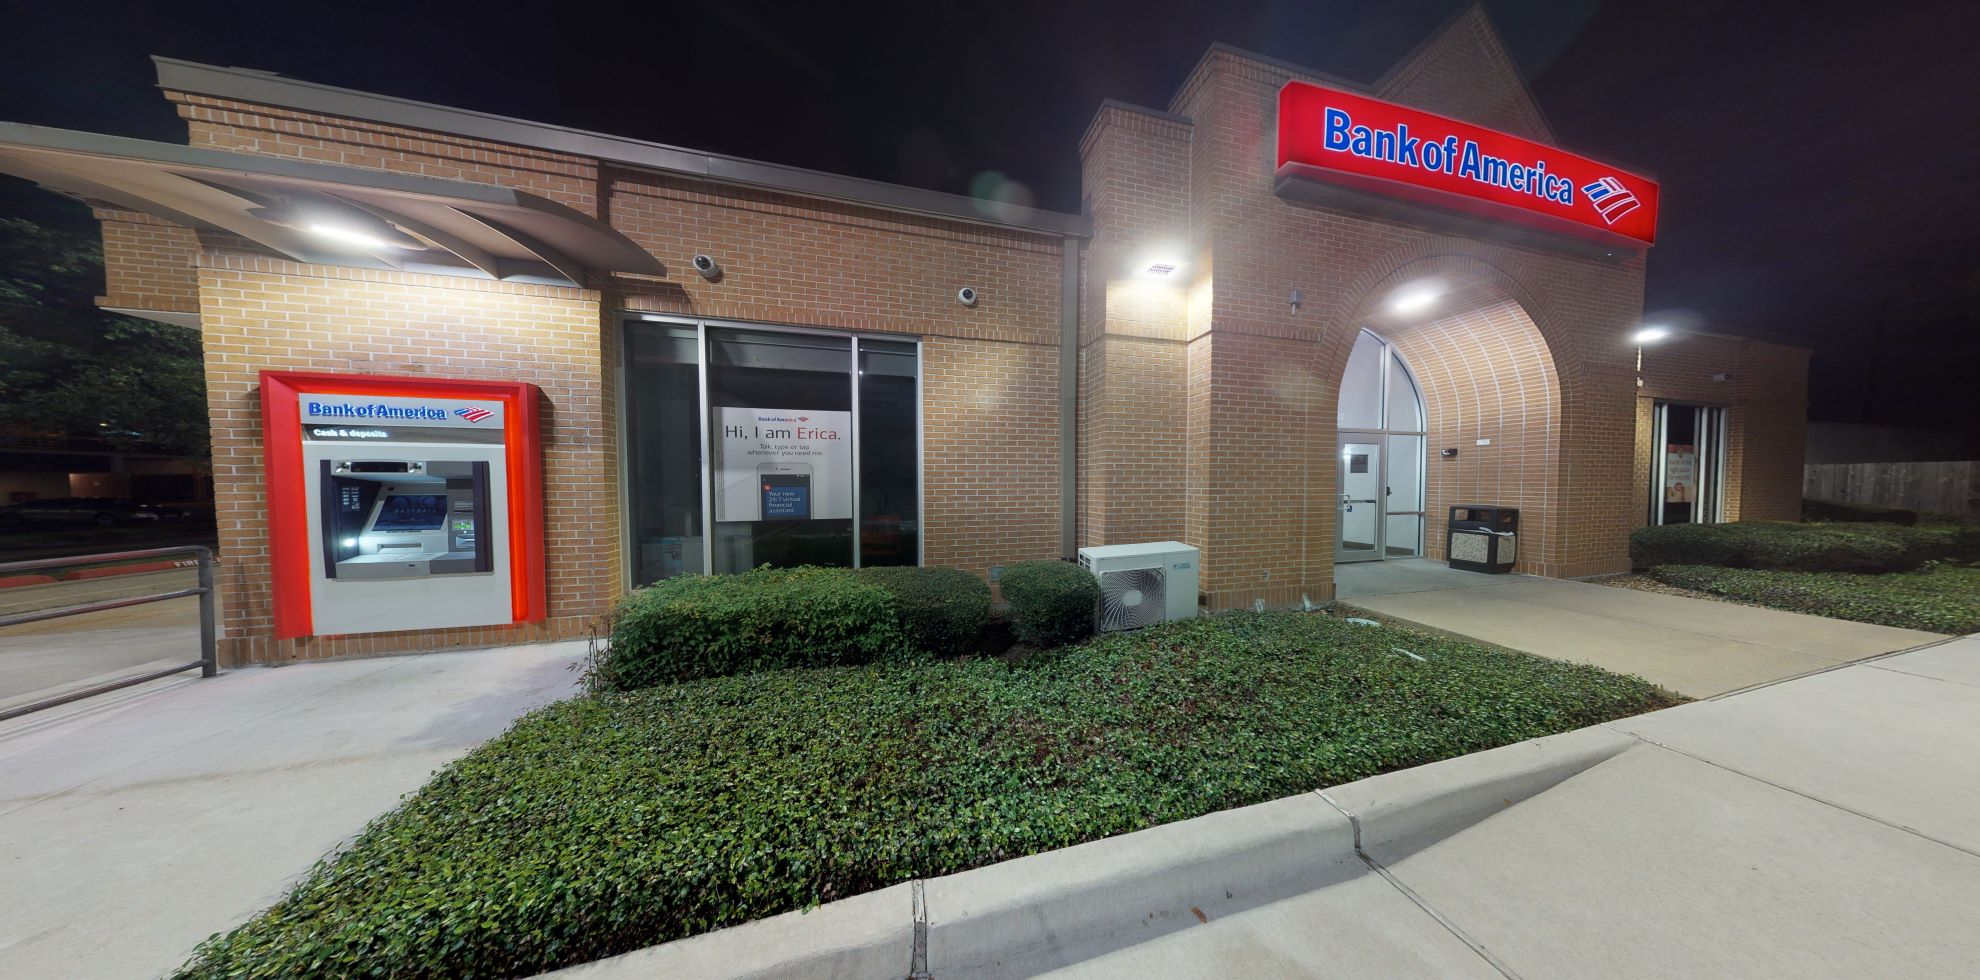 Bank of America financial center with drive-thru ATM | 6732 Stella Link Rd, Houston, TX 77005